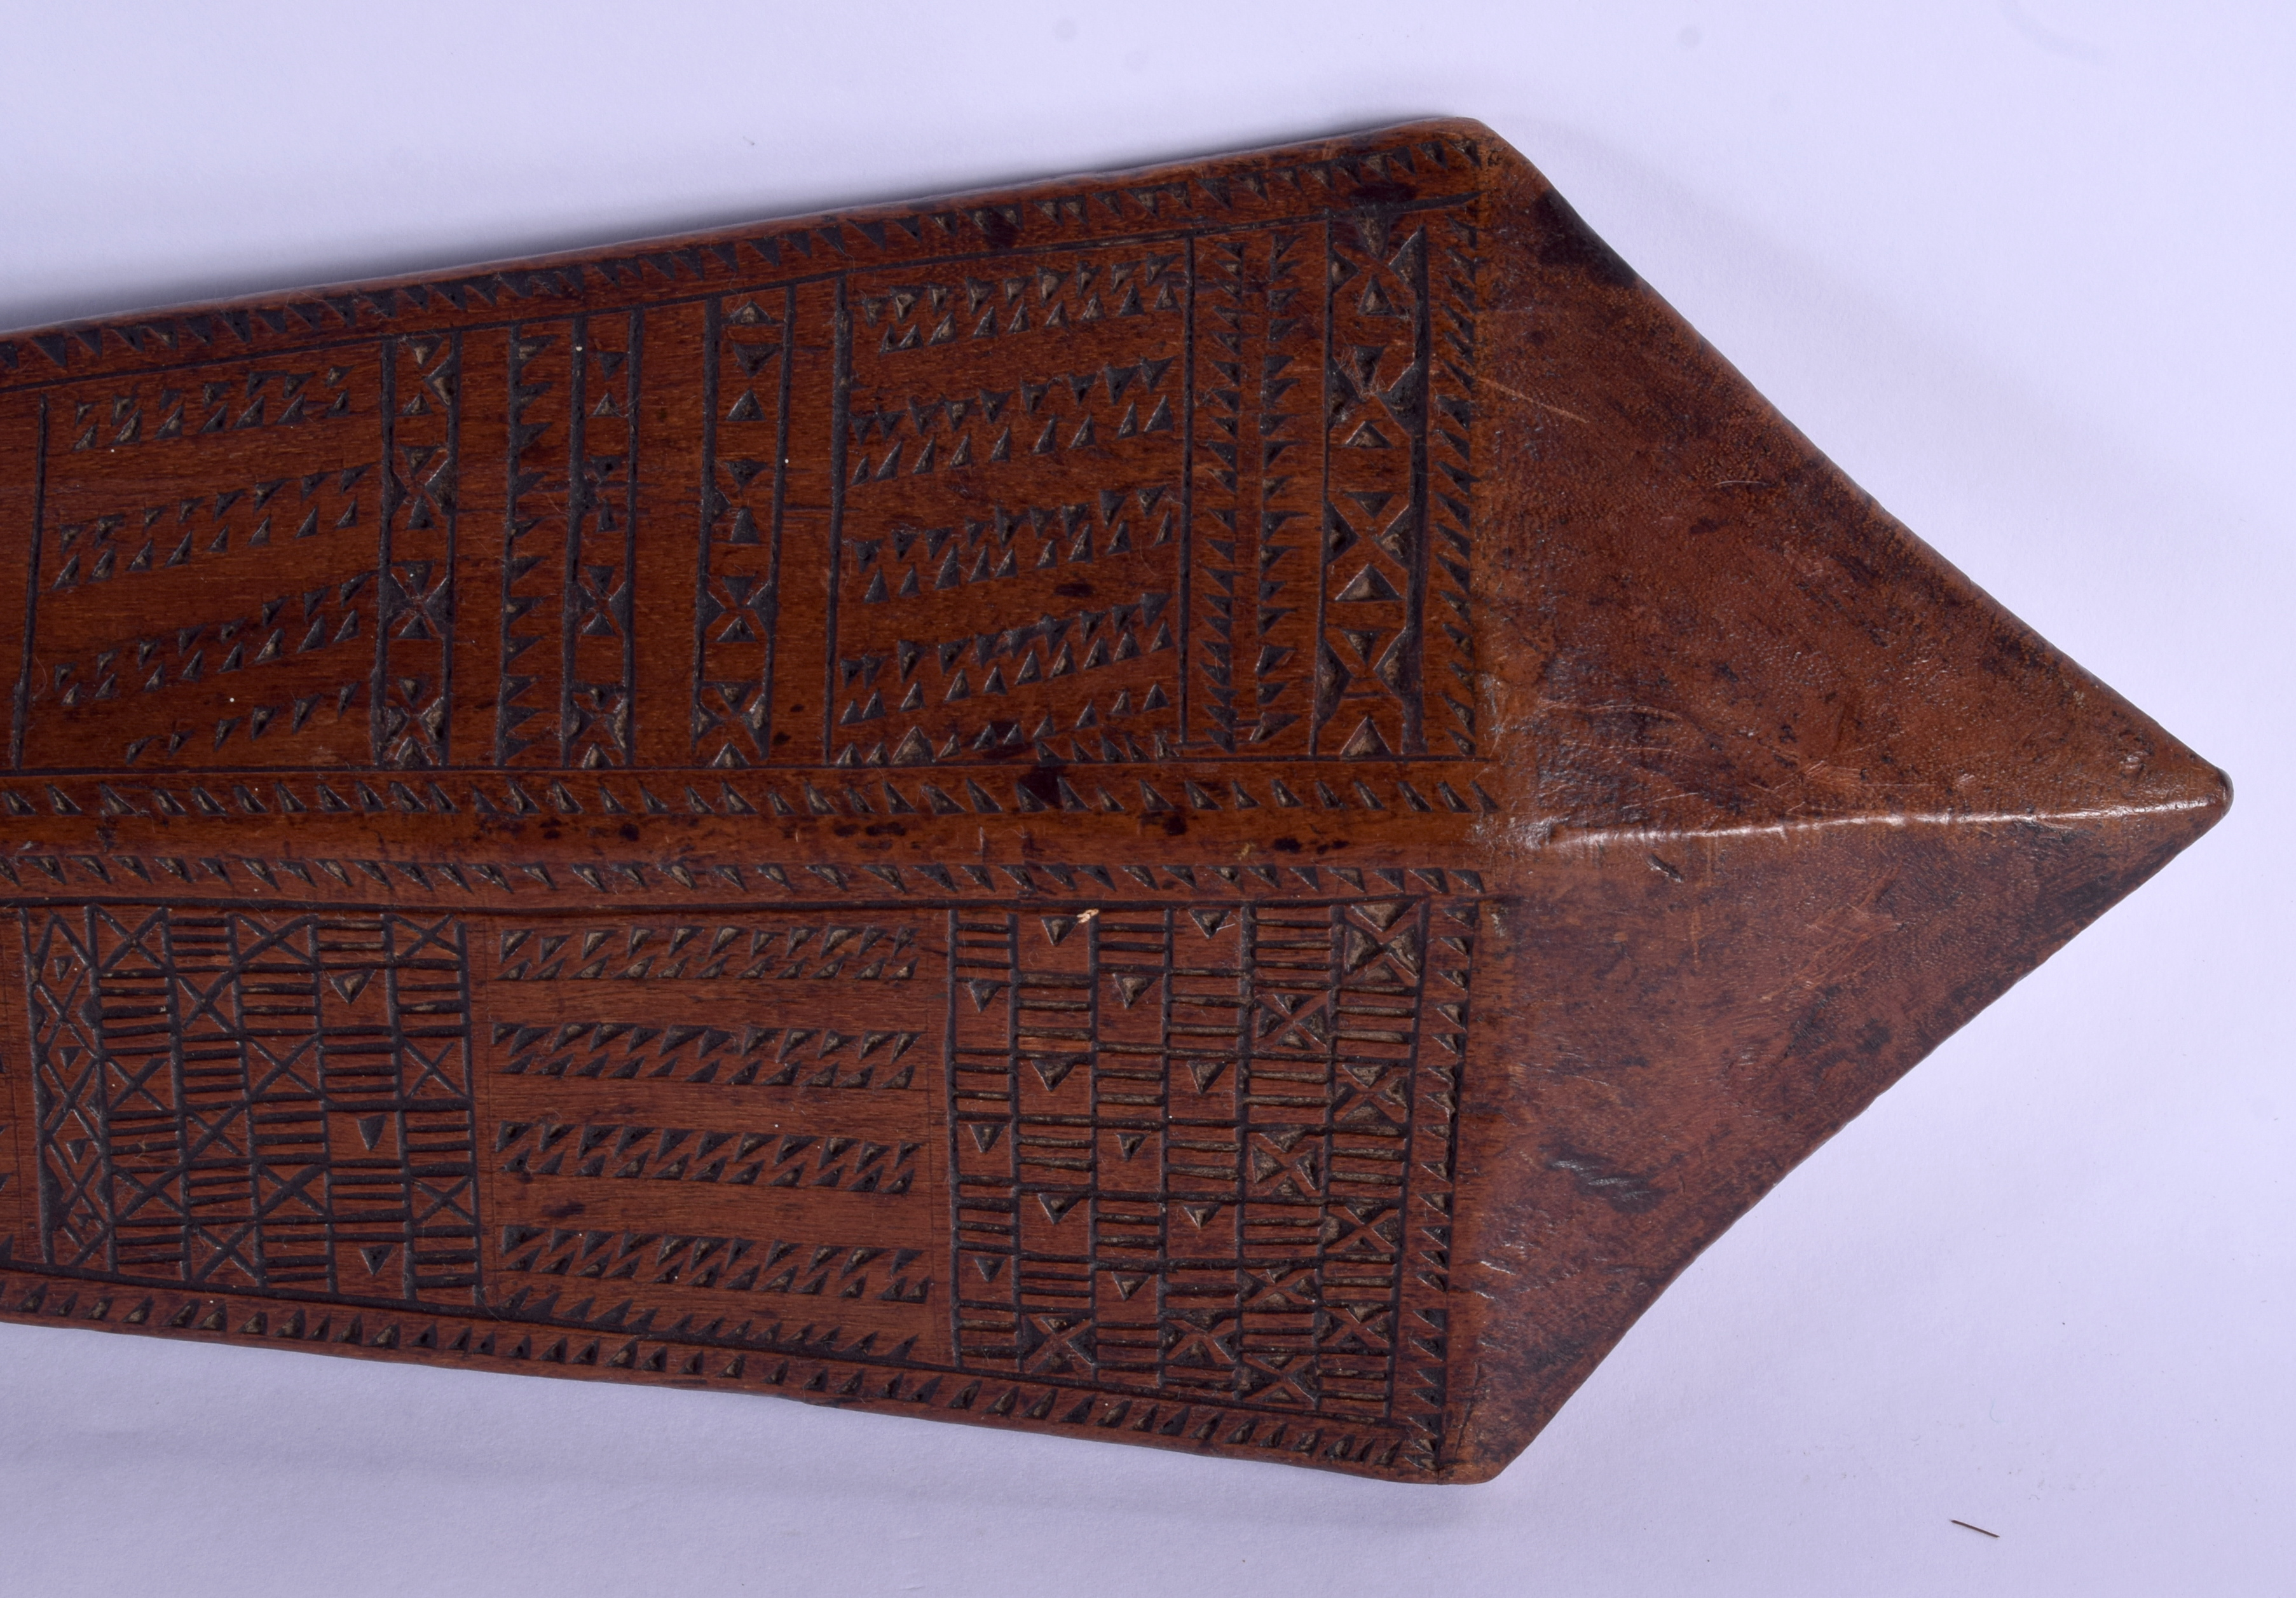 A 19TH CENTURY TONGAN SAMOAN CARVED TRIBAL CLUB decorated with geometric motifs. 68 cm long. - Image 2 of 8